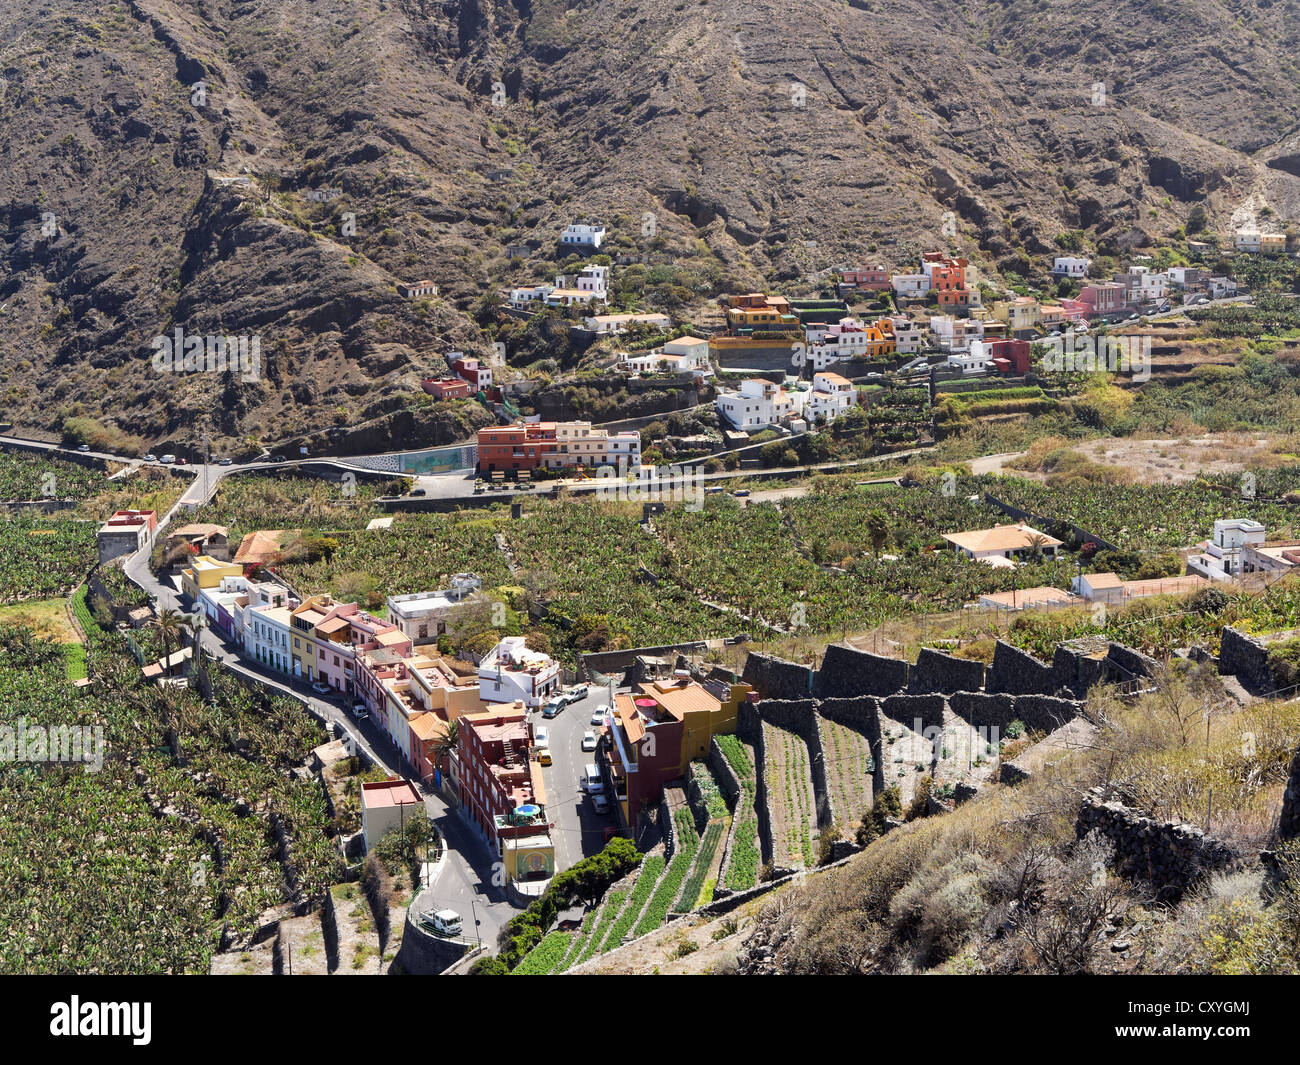 Districts of Santa Catalina and Los Pedazitos, Hermigua, La Gomera, Canary Islands, Spain, Europe - Stock Image